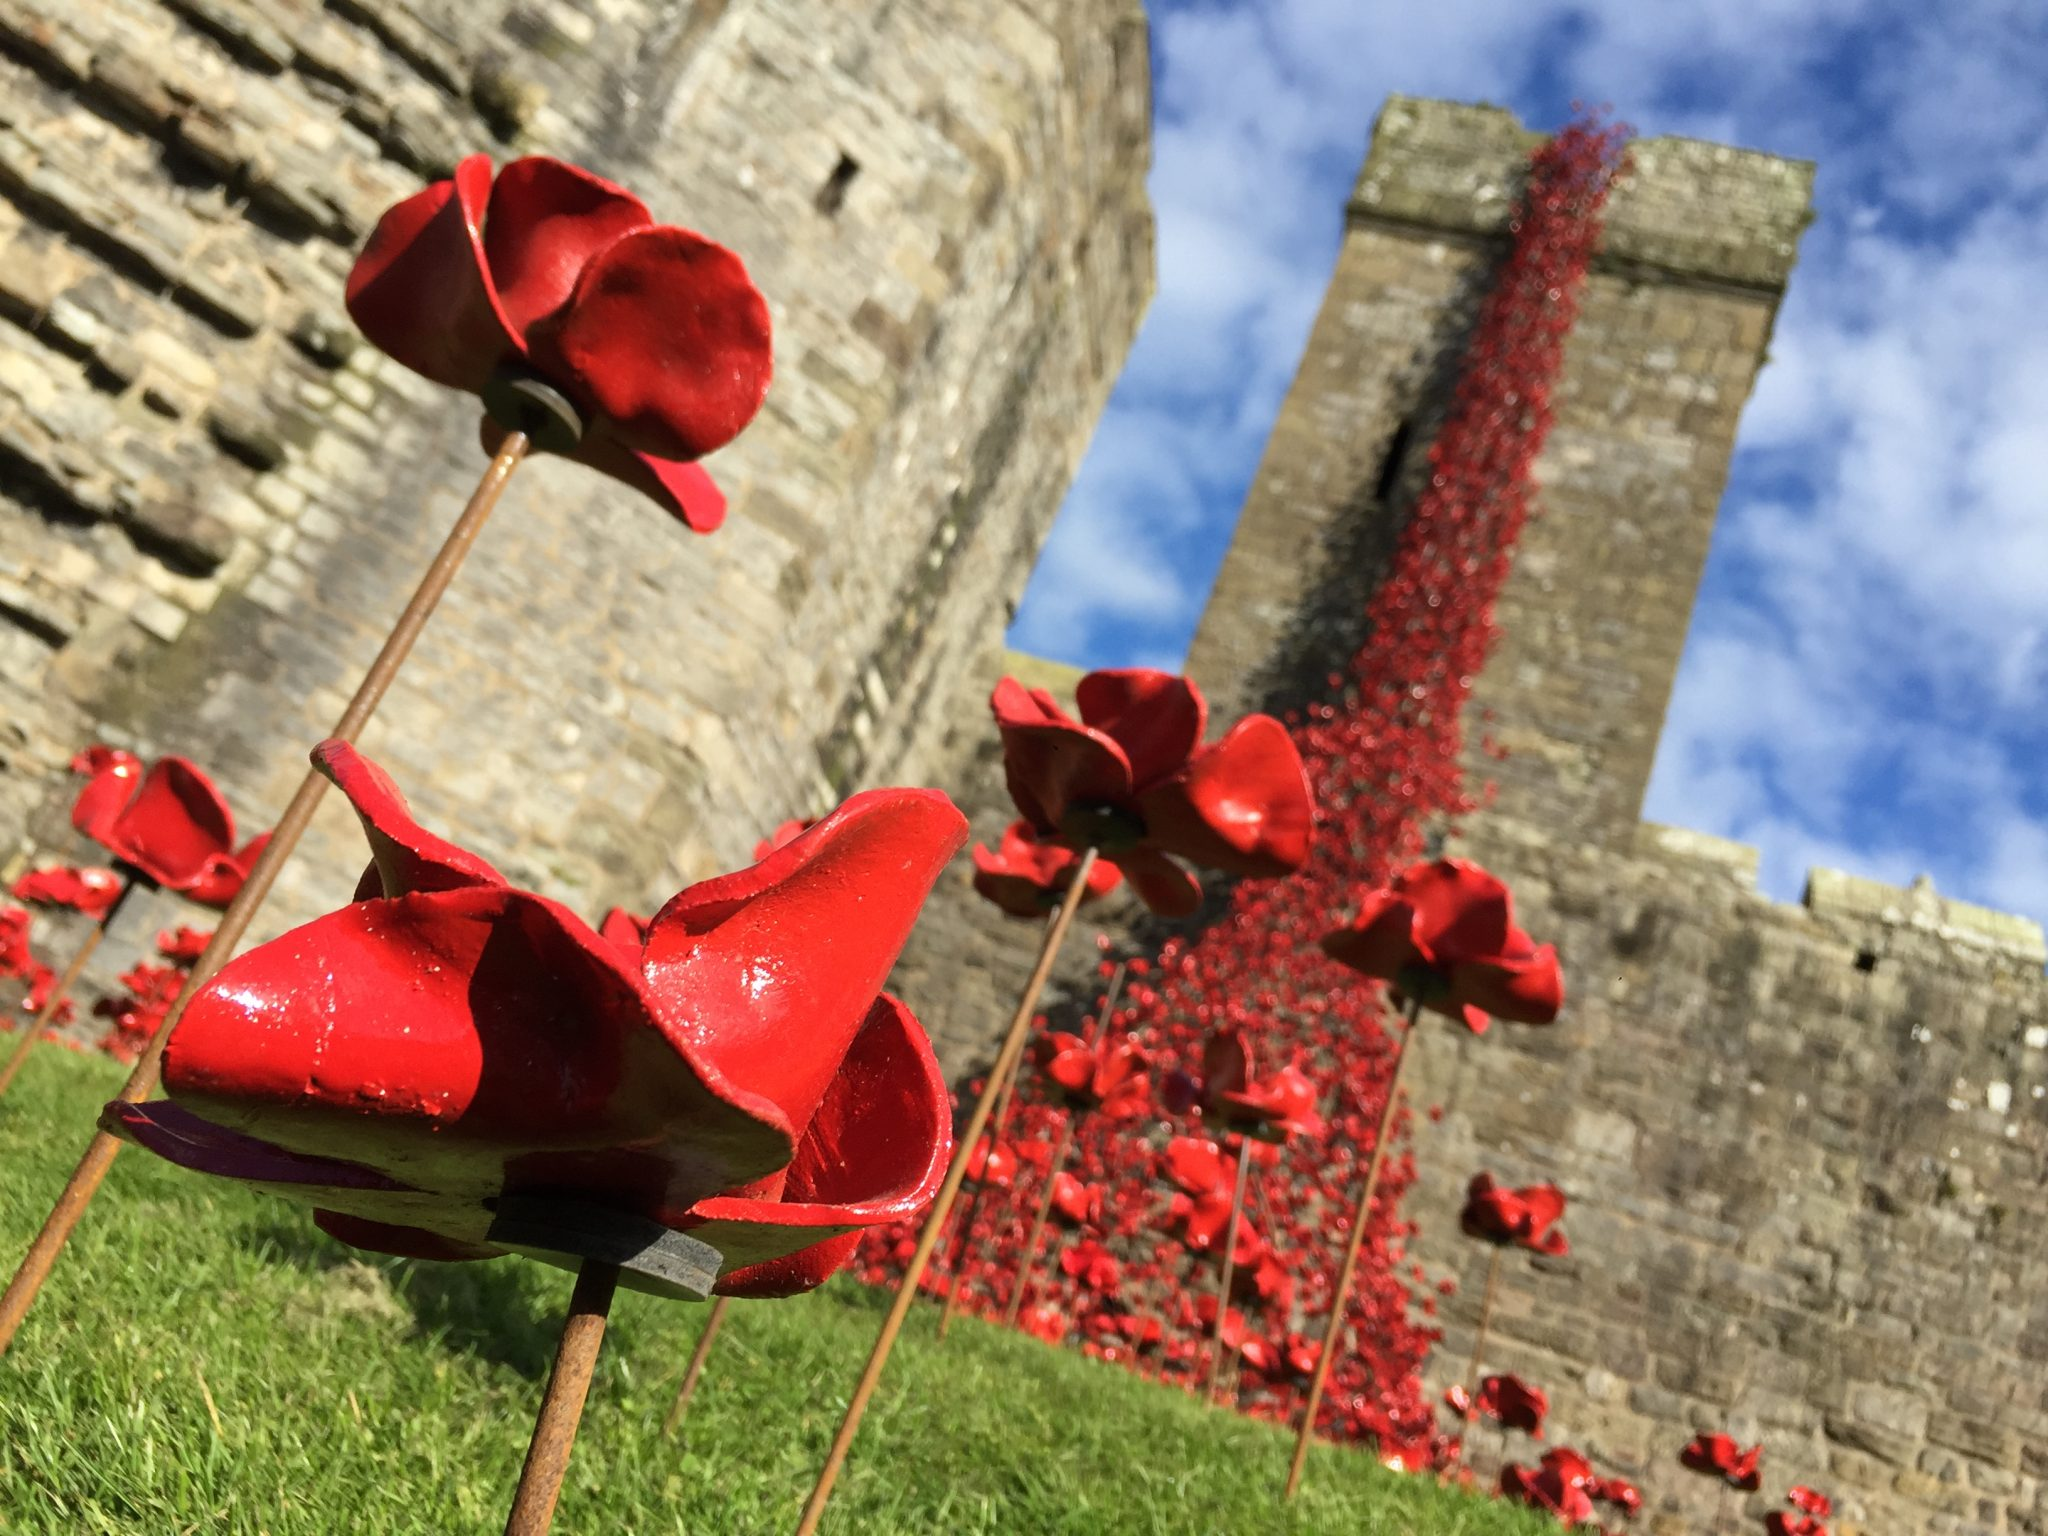 Caernarfon_Castle_Poppies_Sculpture_-_closeup_of_11